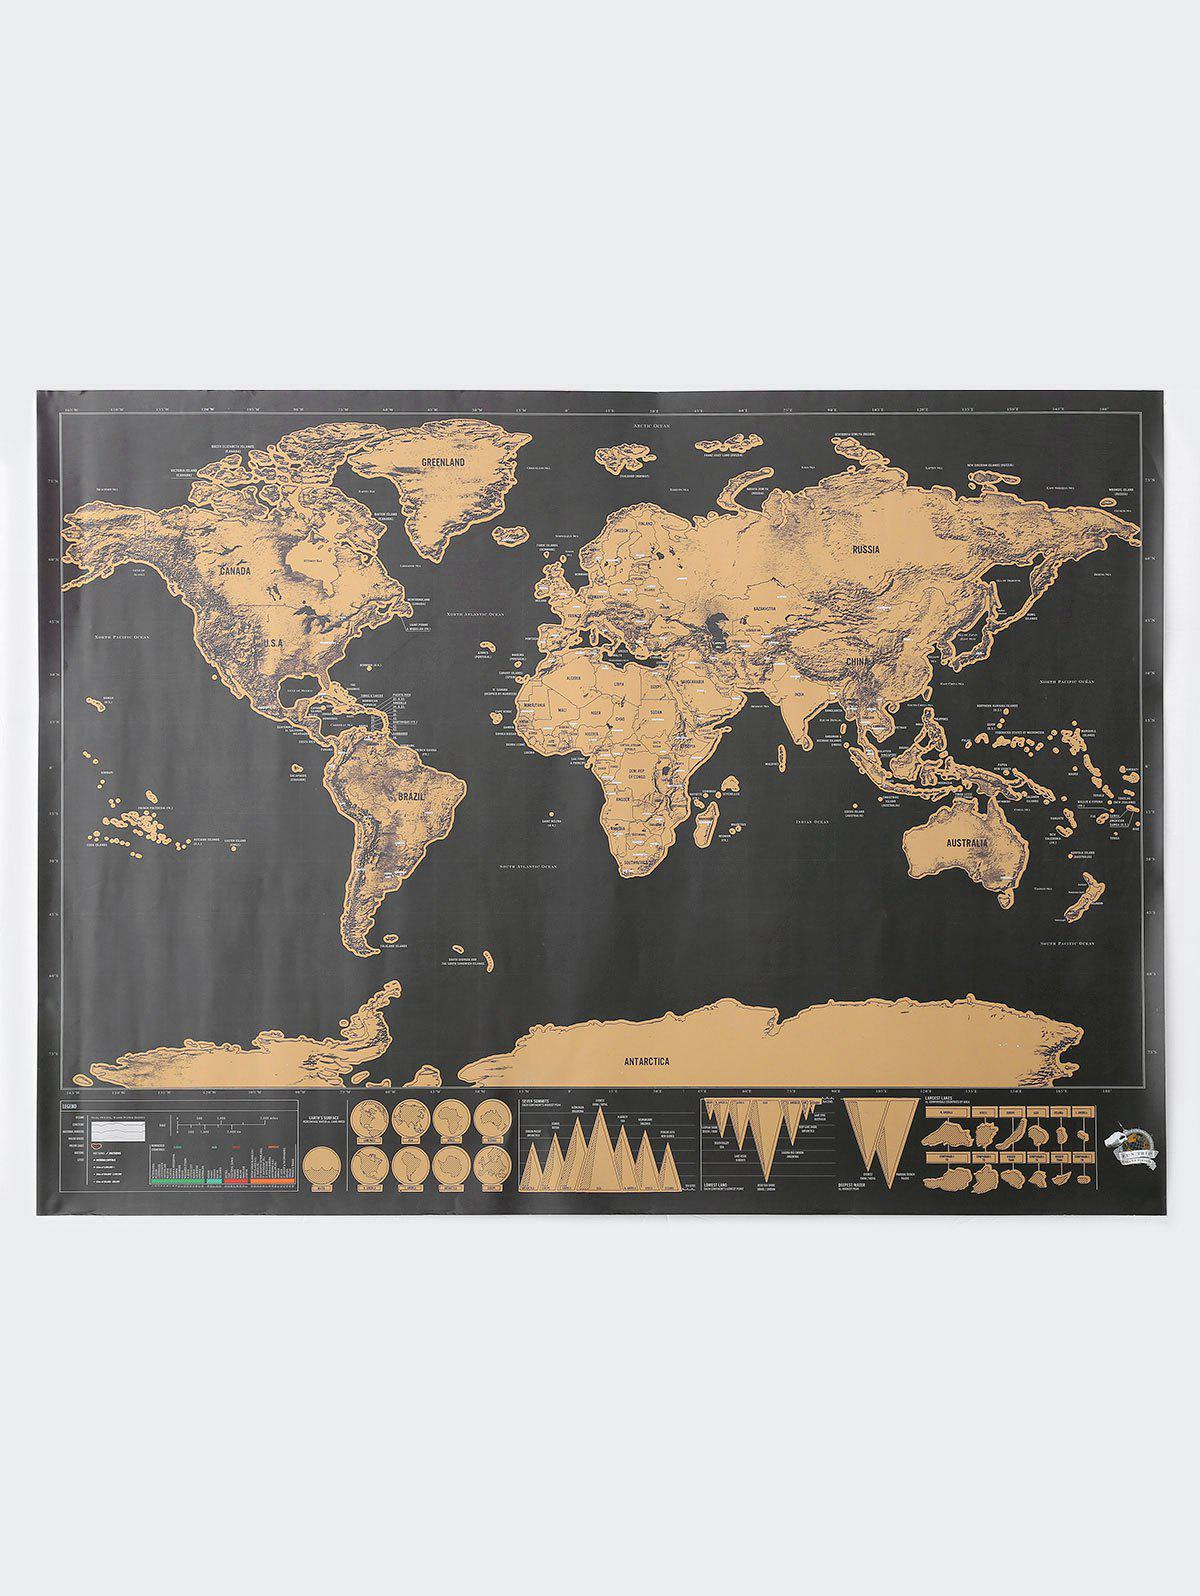 Scratch World Map Travel Edition DeluxeHOME<br><br>Size: 82.5*59.4CM; Color: BRONZE-COLORED; Materials: Laminate, Card, Colored Foil.;